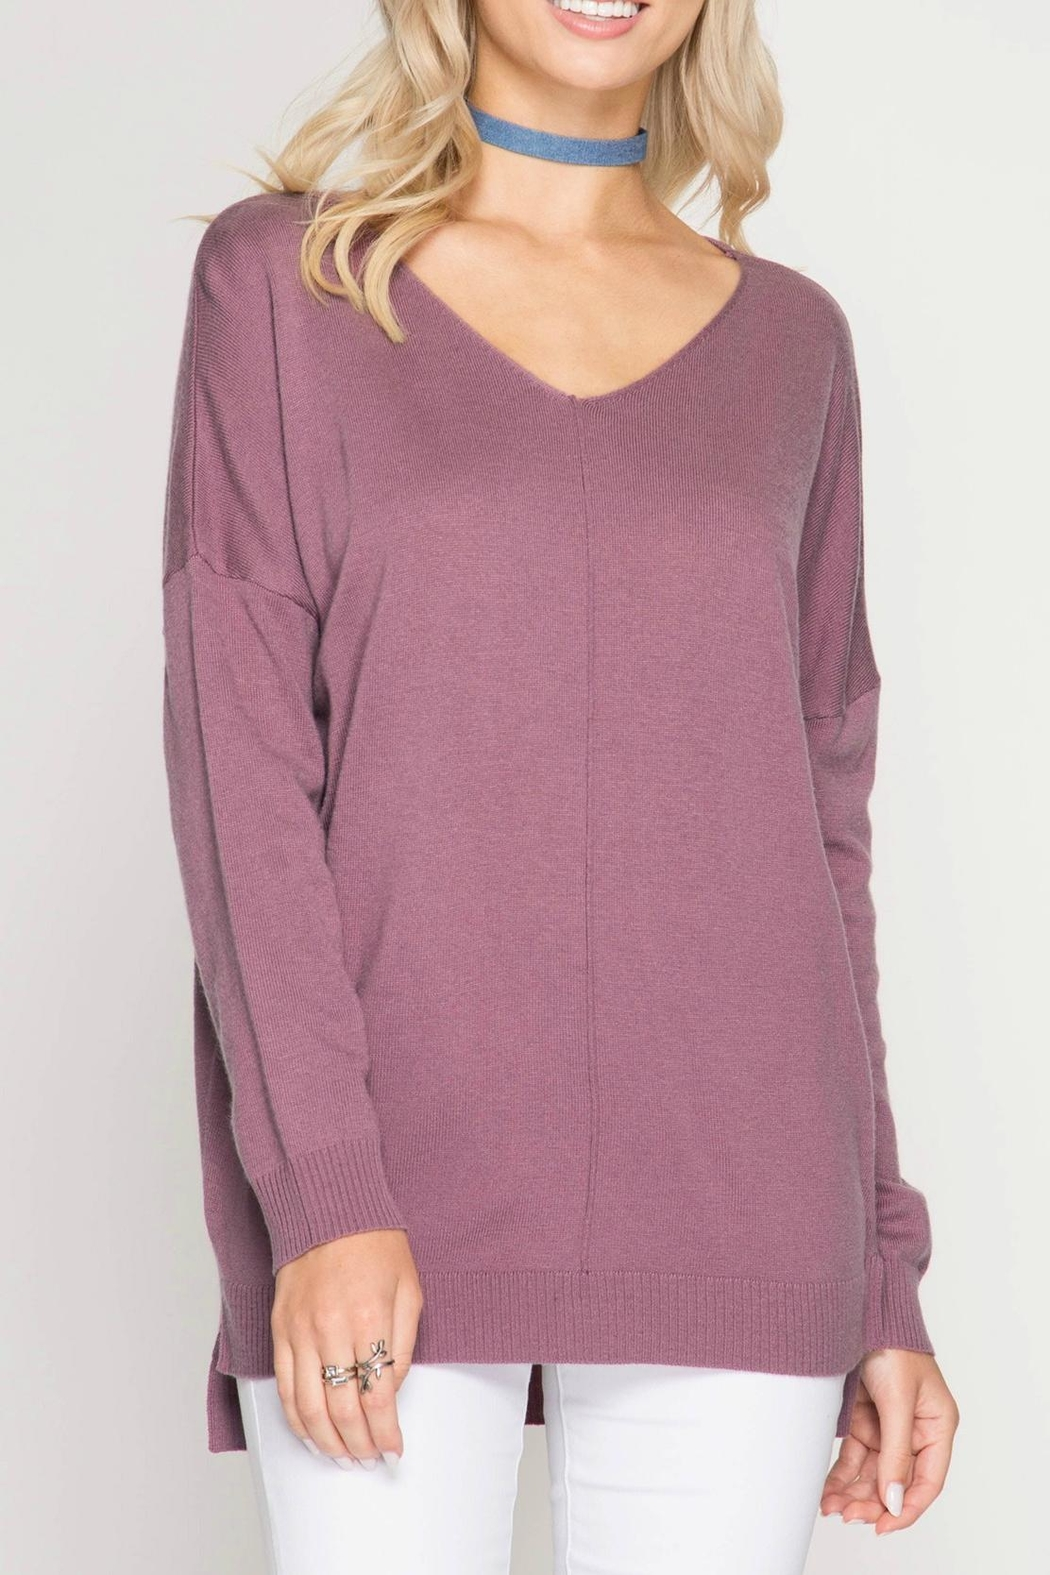 She + Sky Mauve Sweater Tunic - Main Image